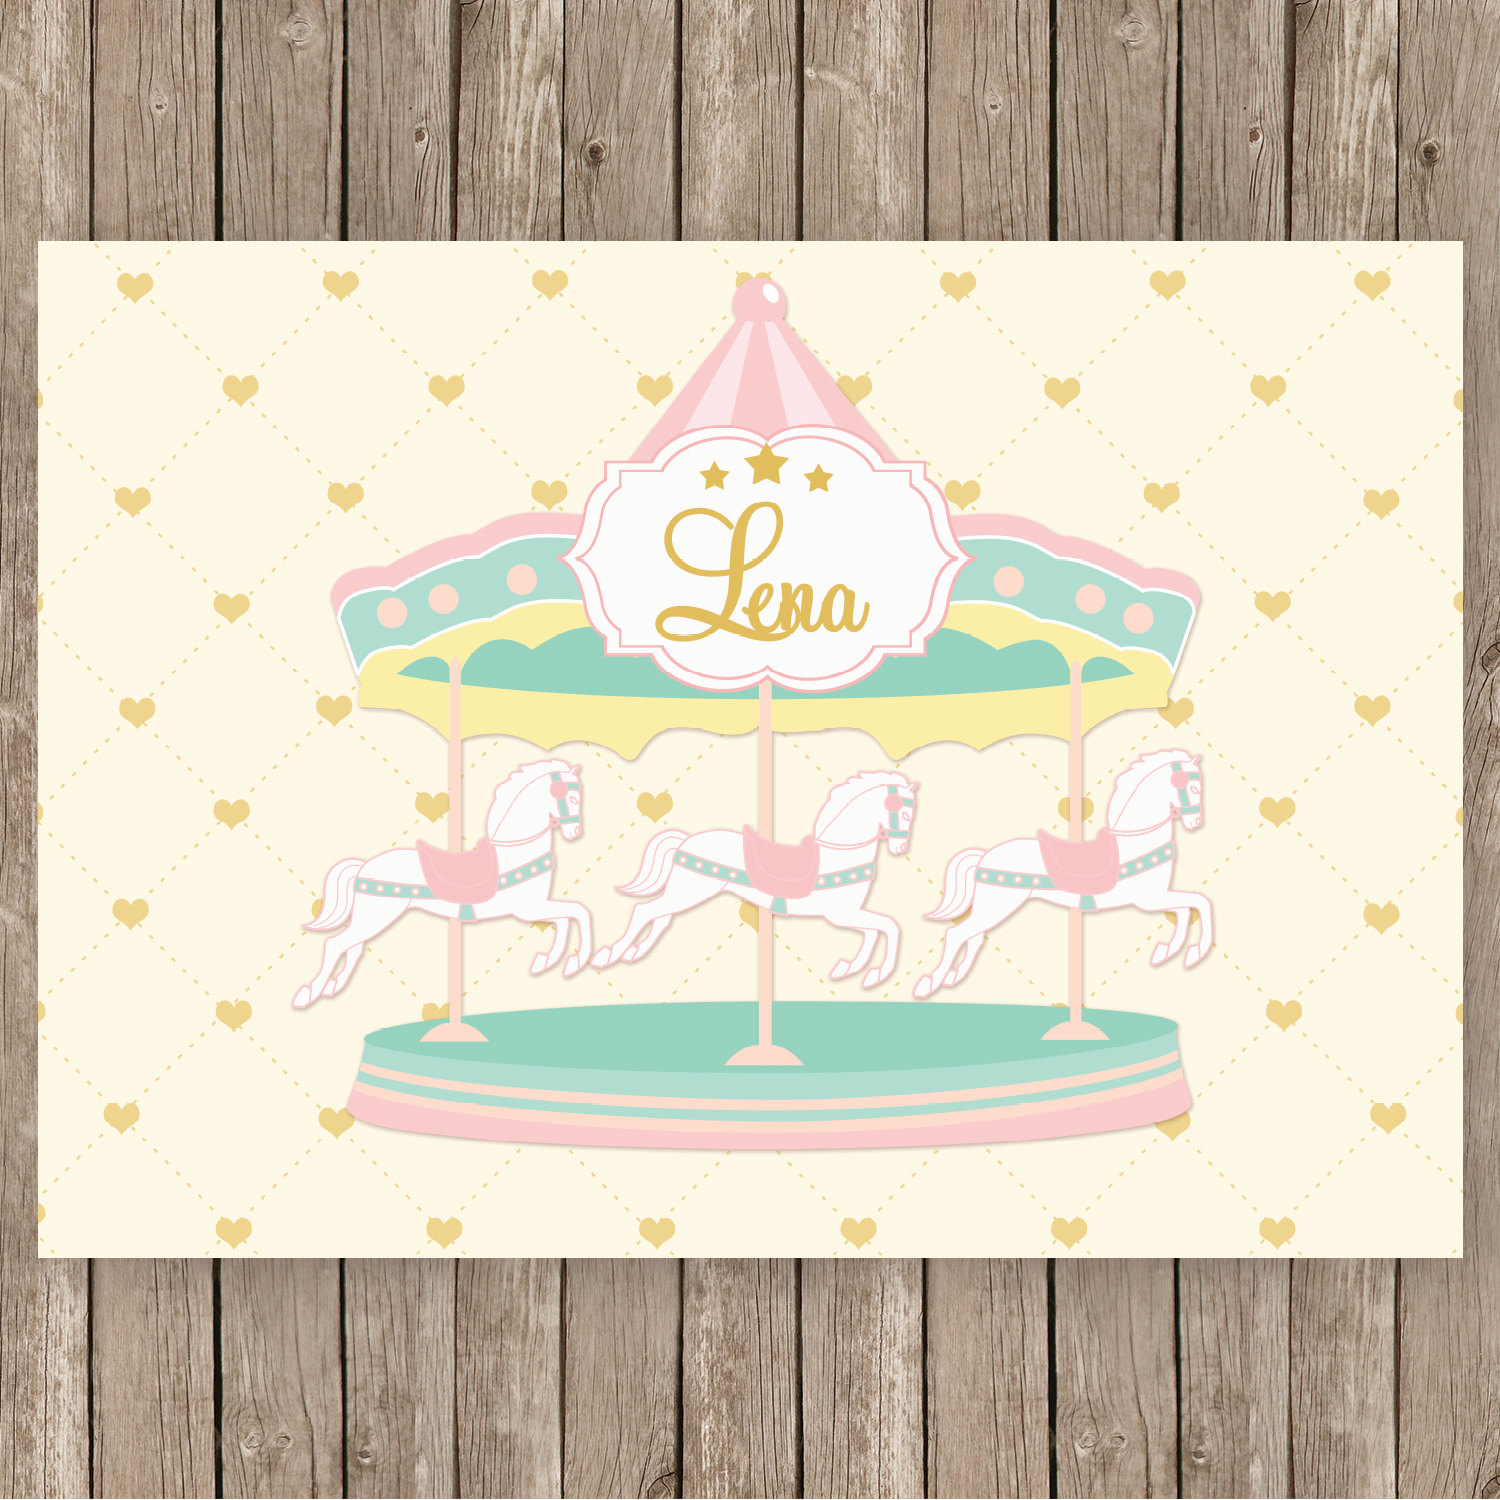 Carousel clipart pink gold In backdrop gold cream pink